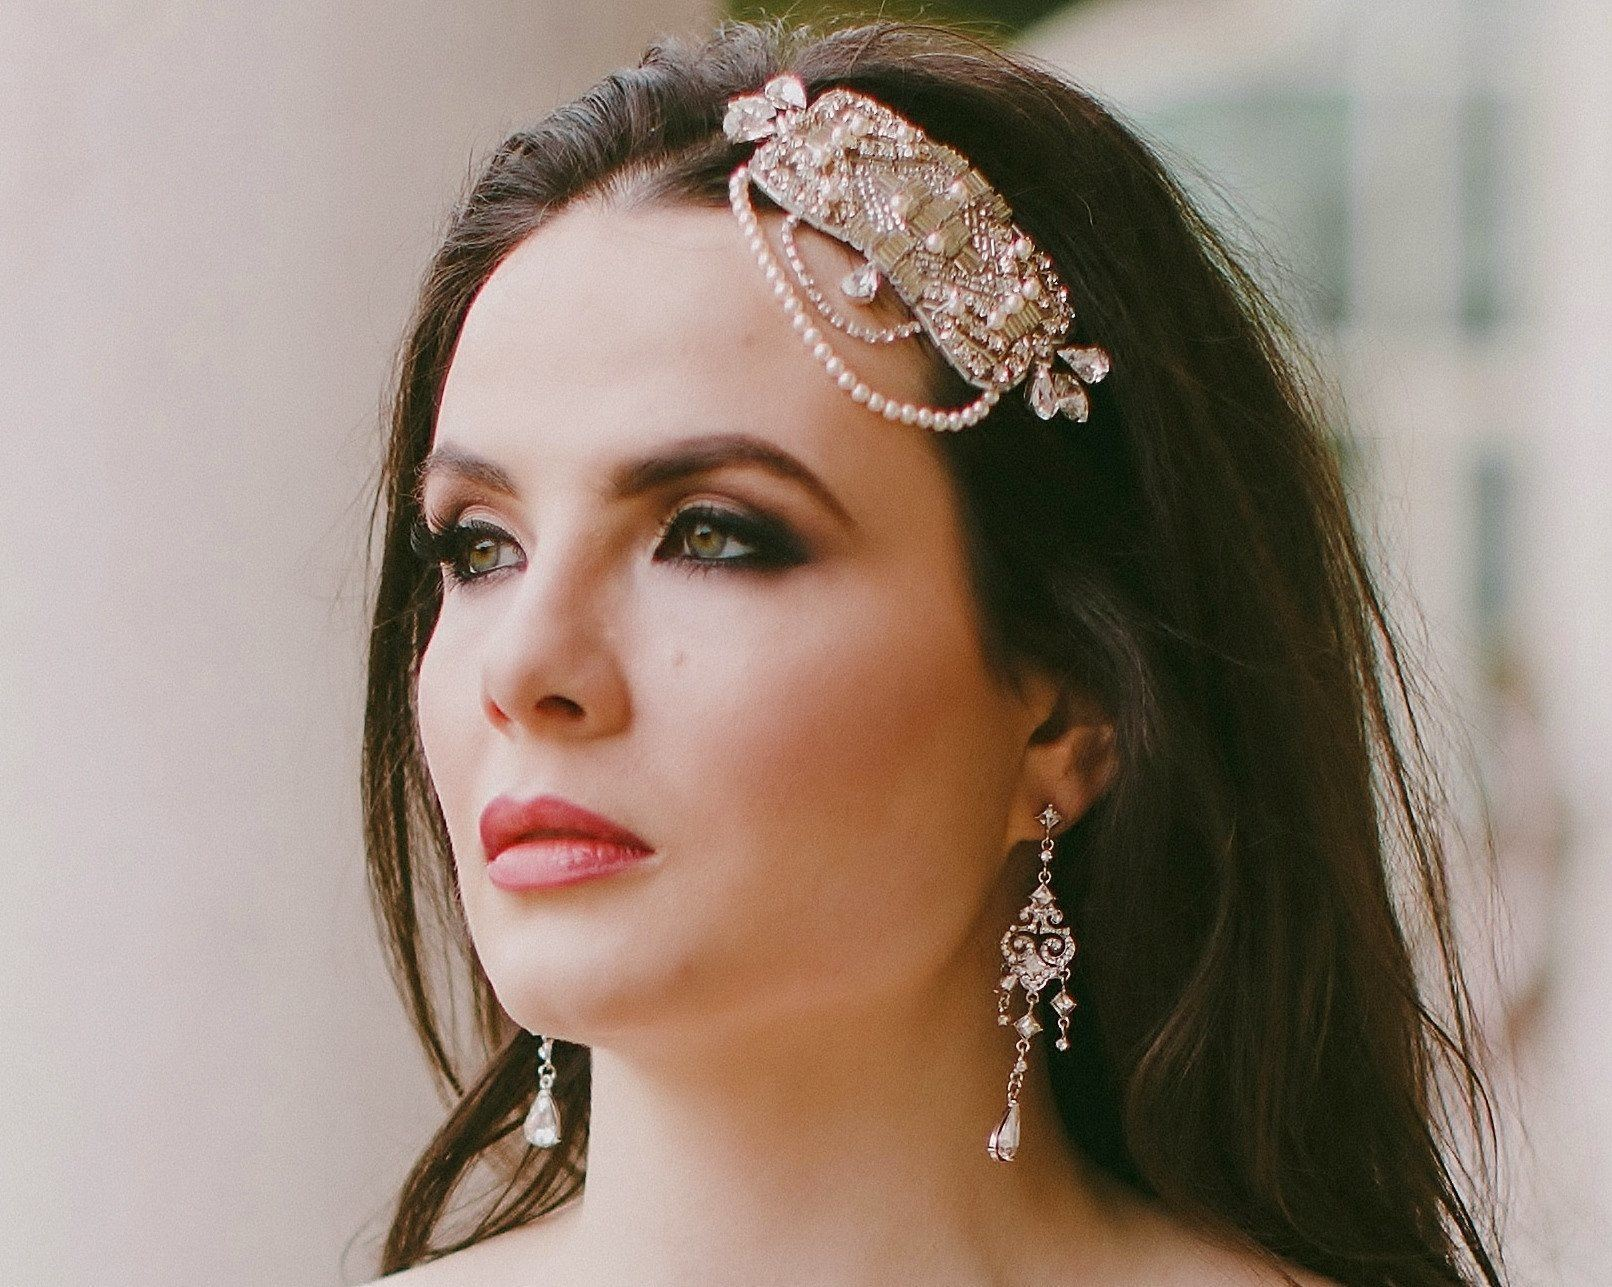 Vintage Side Headpieces - Embellished Appliqué Headband, Lauren